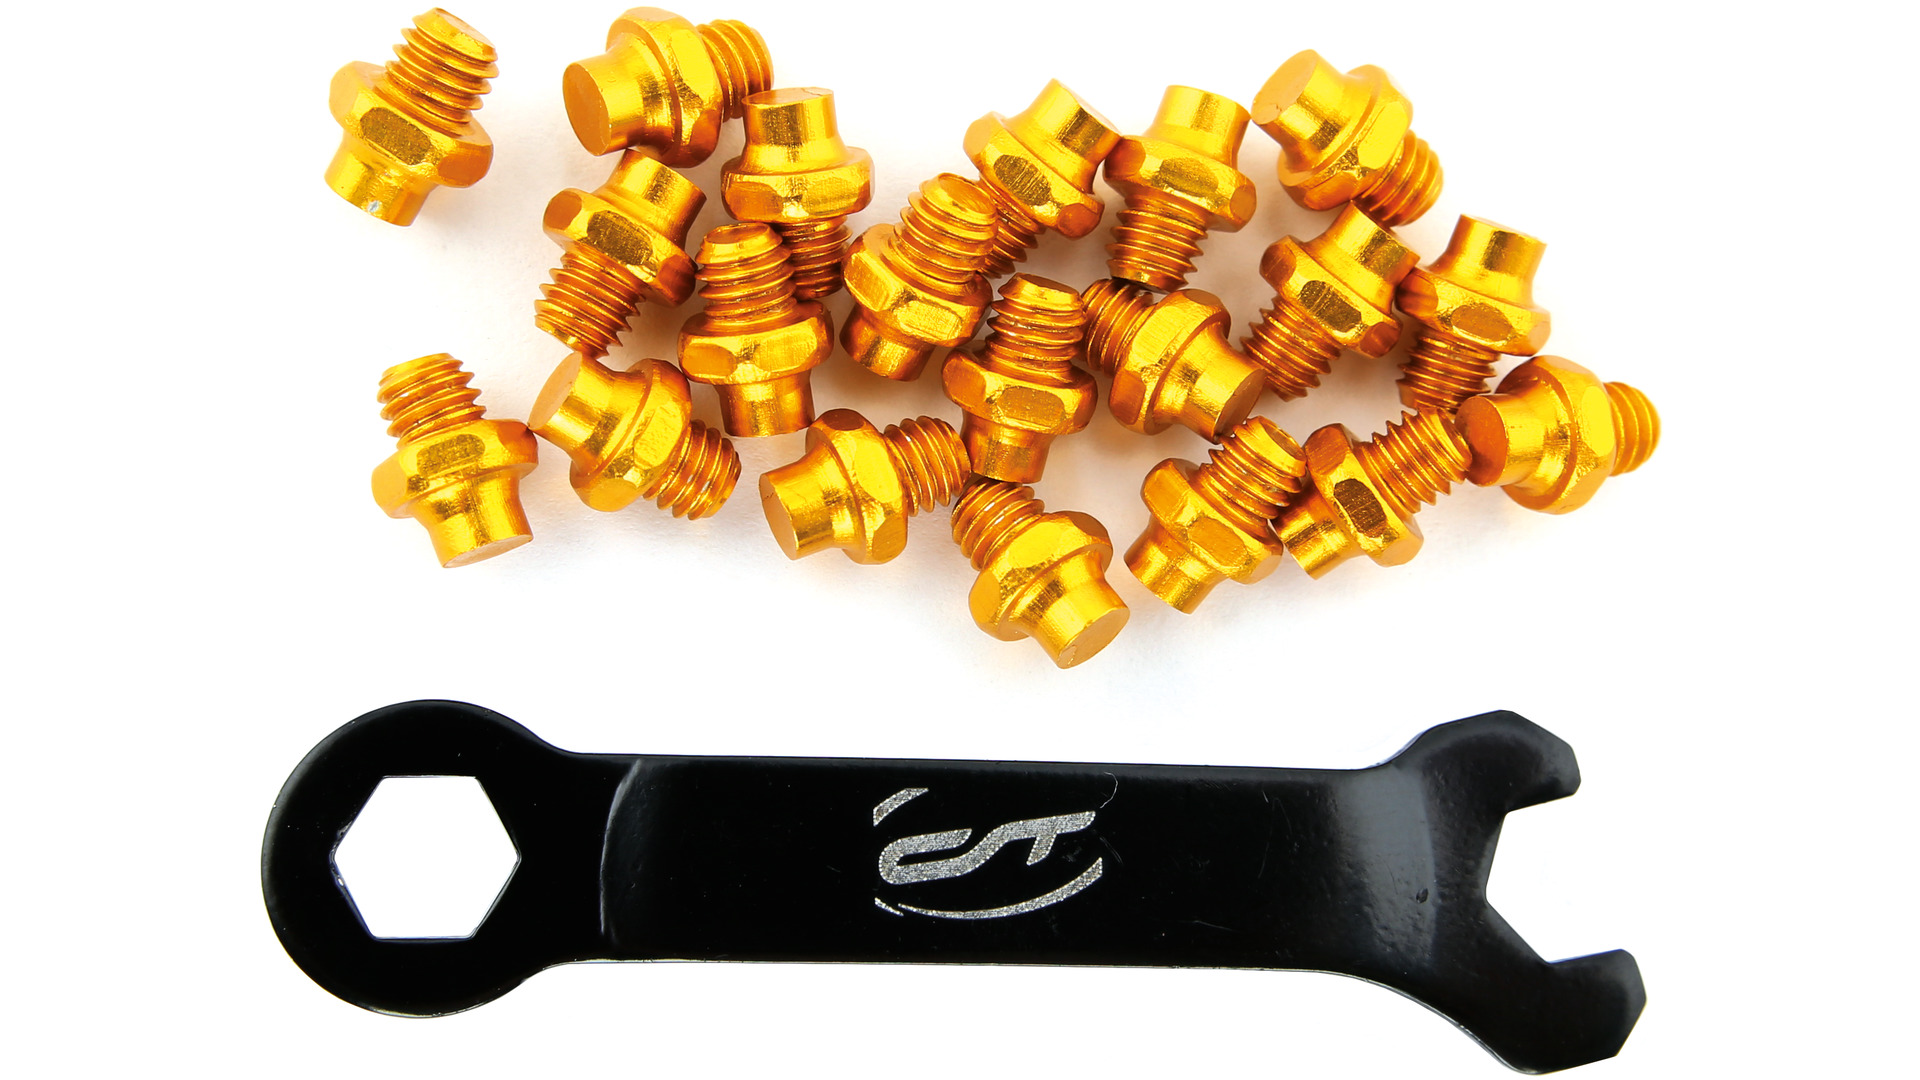 Contec Pedal Pins R-Pins Select with Wrench - Gold (20)